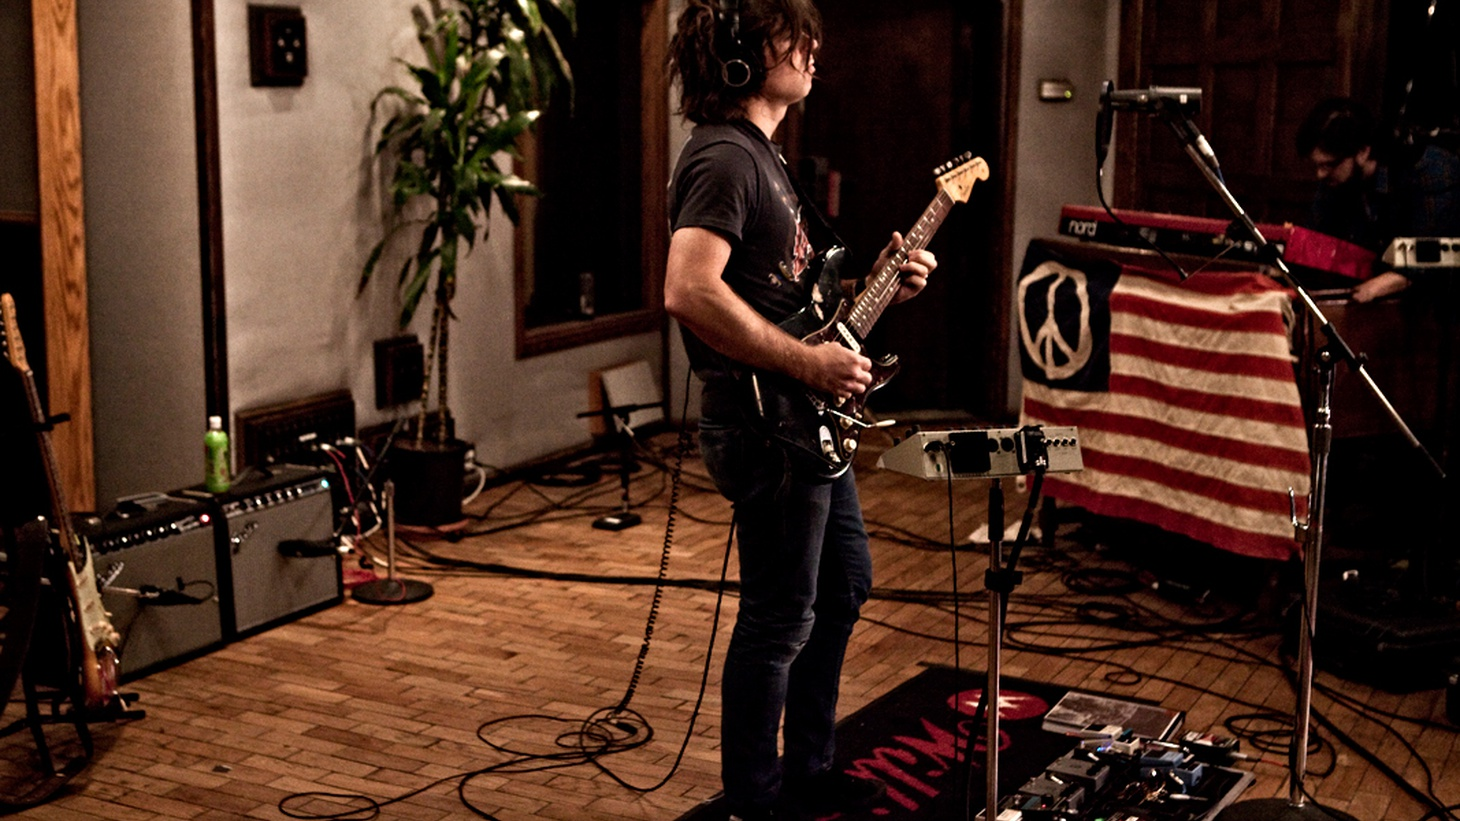 Ryan Adams' 14th studio album was recorded at his own Pax AM studios here in LA. The self-titled work is heartland rock at its finest, with Ryan's special flare. The singer-songwriter recorded a special session for us at the legendary Village Recording Studios.